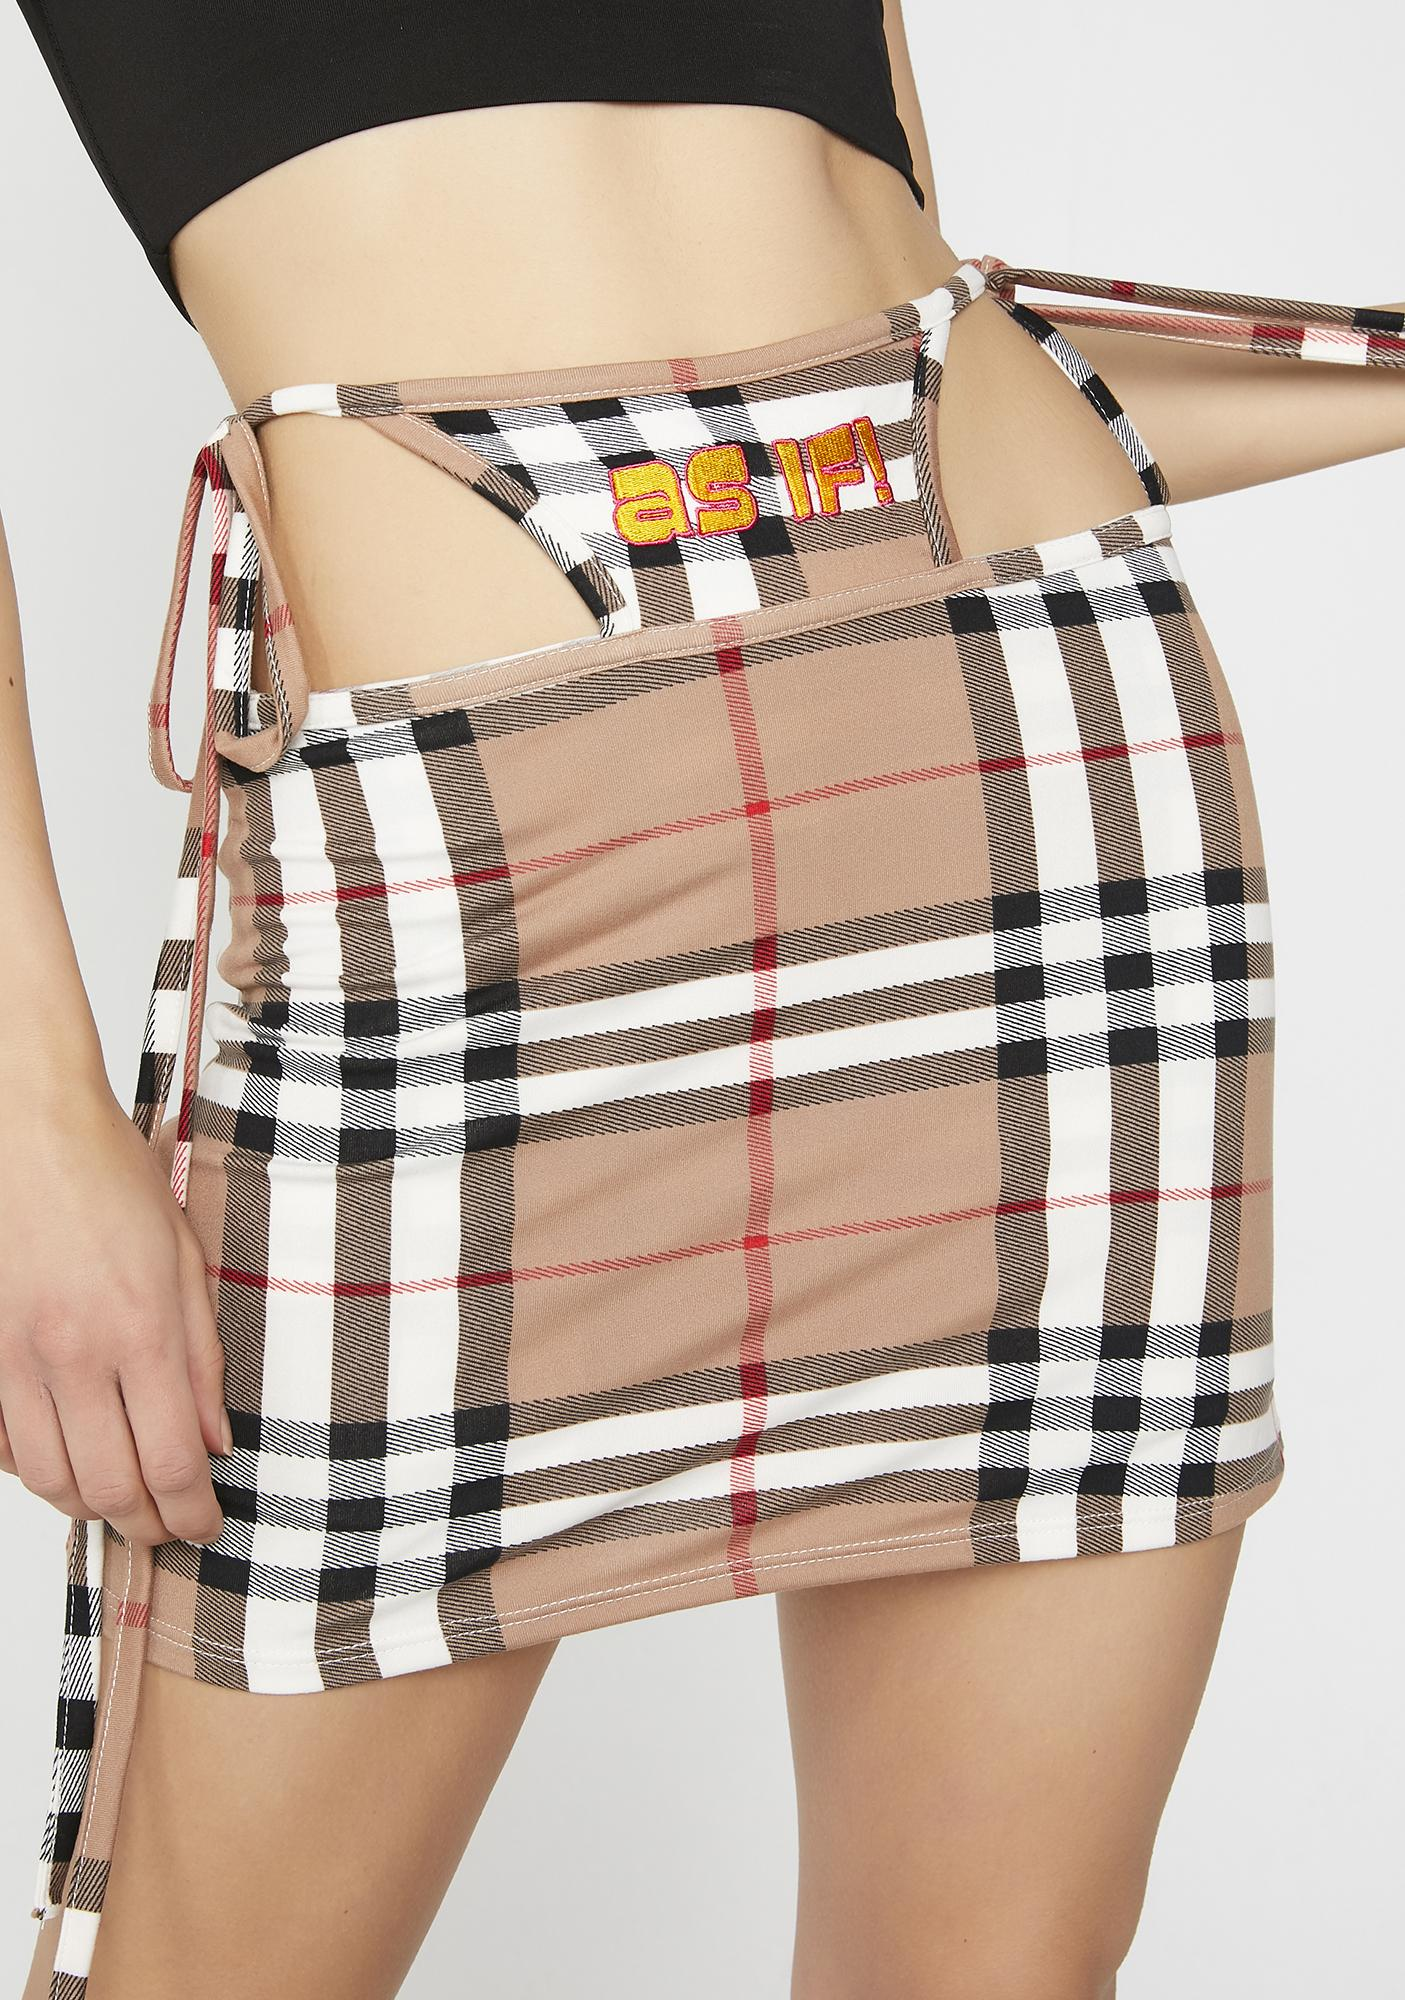 O Mighty As If G String Skirt